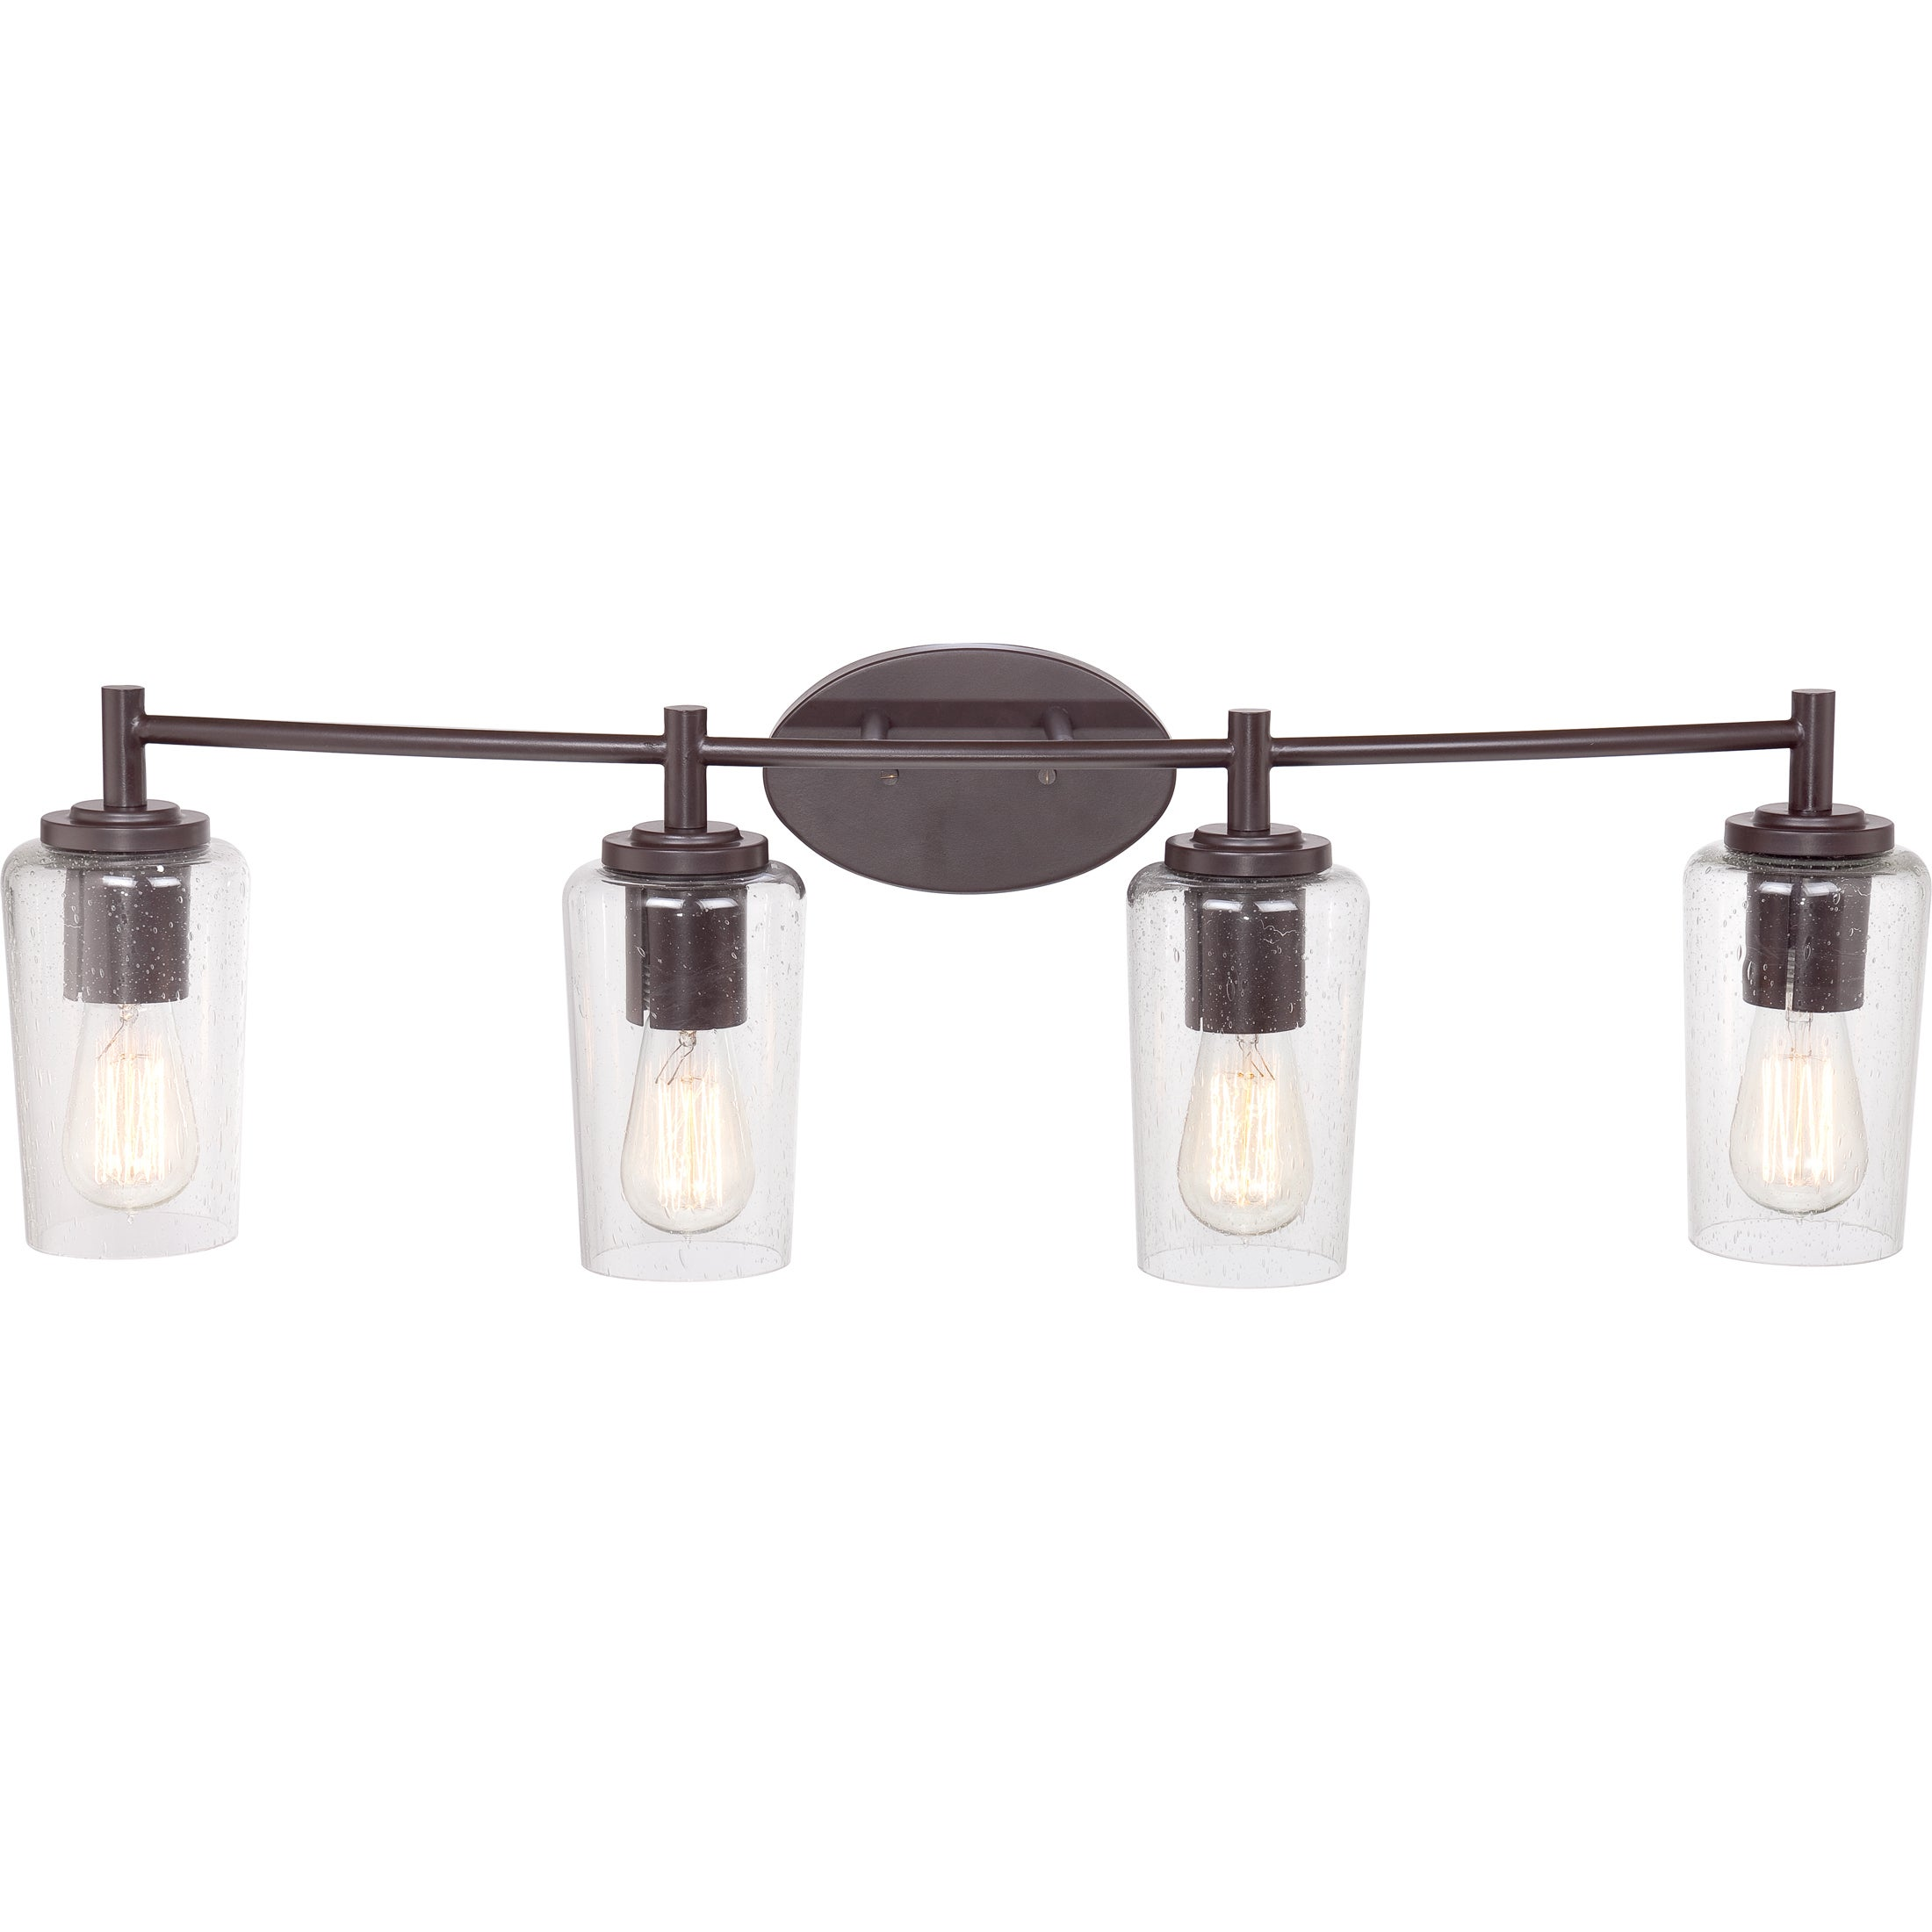 Quoizel Edison Western Bronze 4 Light Bath Fixture With Seedy Gl Free Shipping Today 9421992